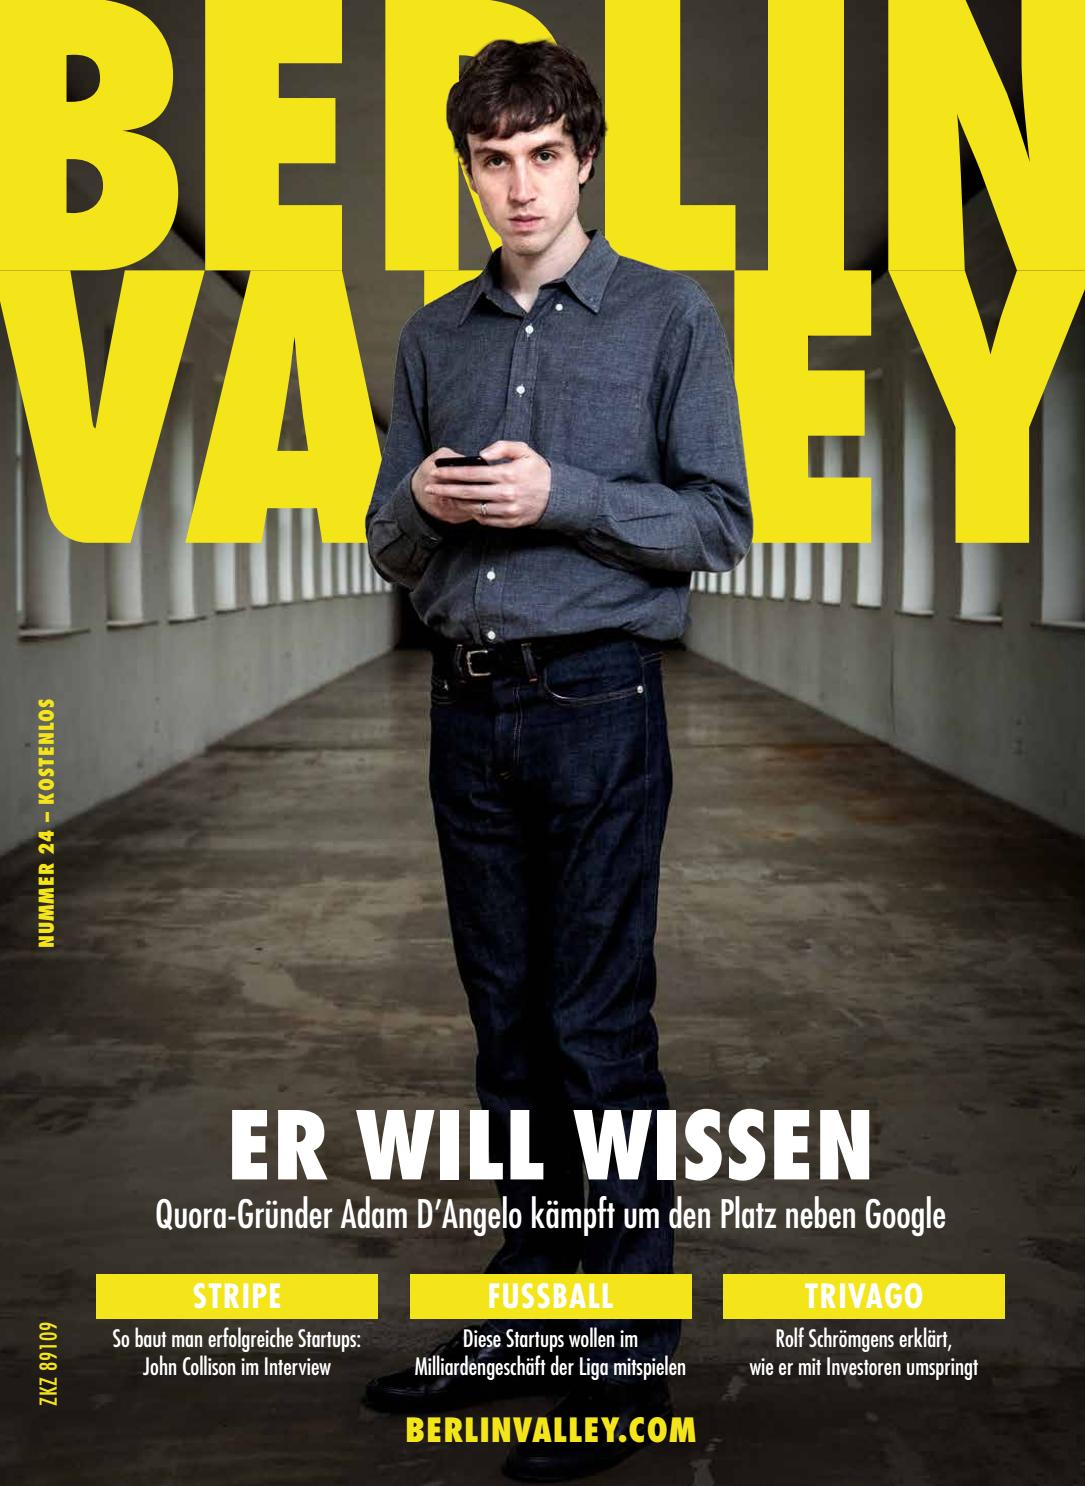 Berlin Valley 24 August 2017 by NKF Media - issuu